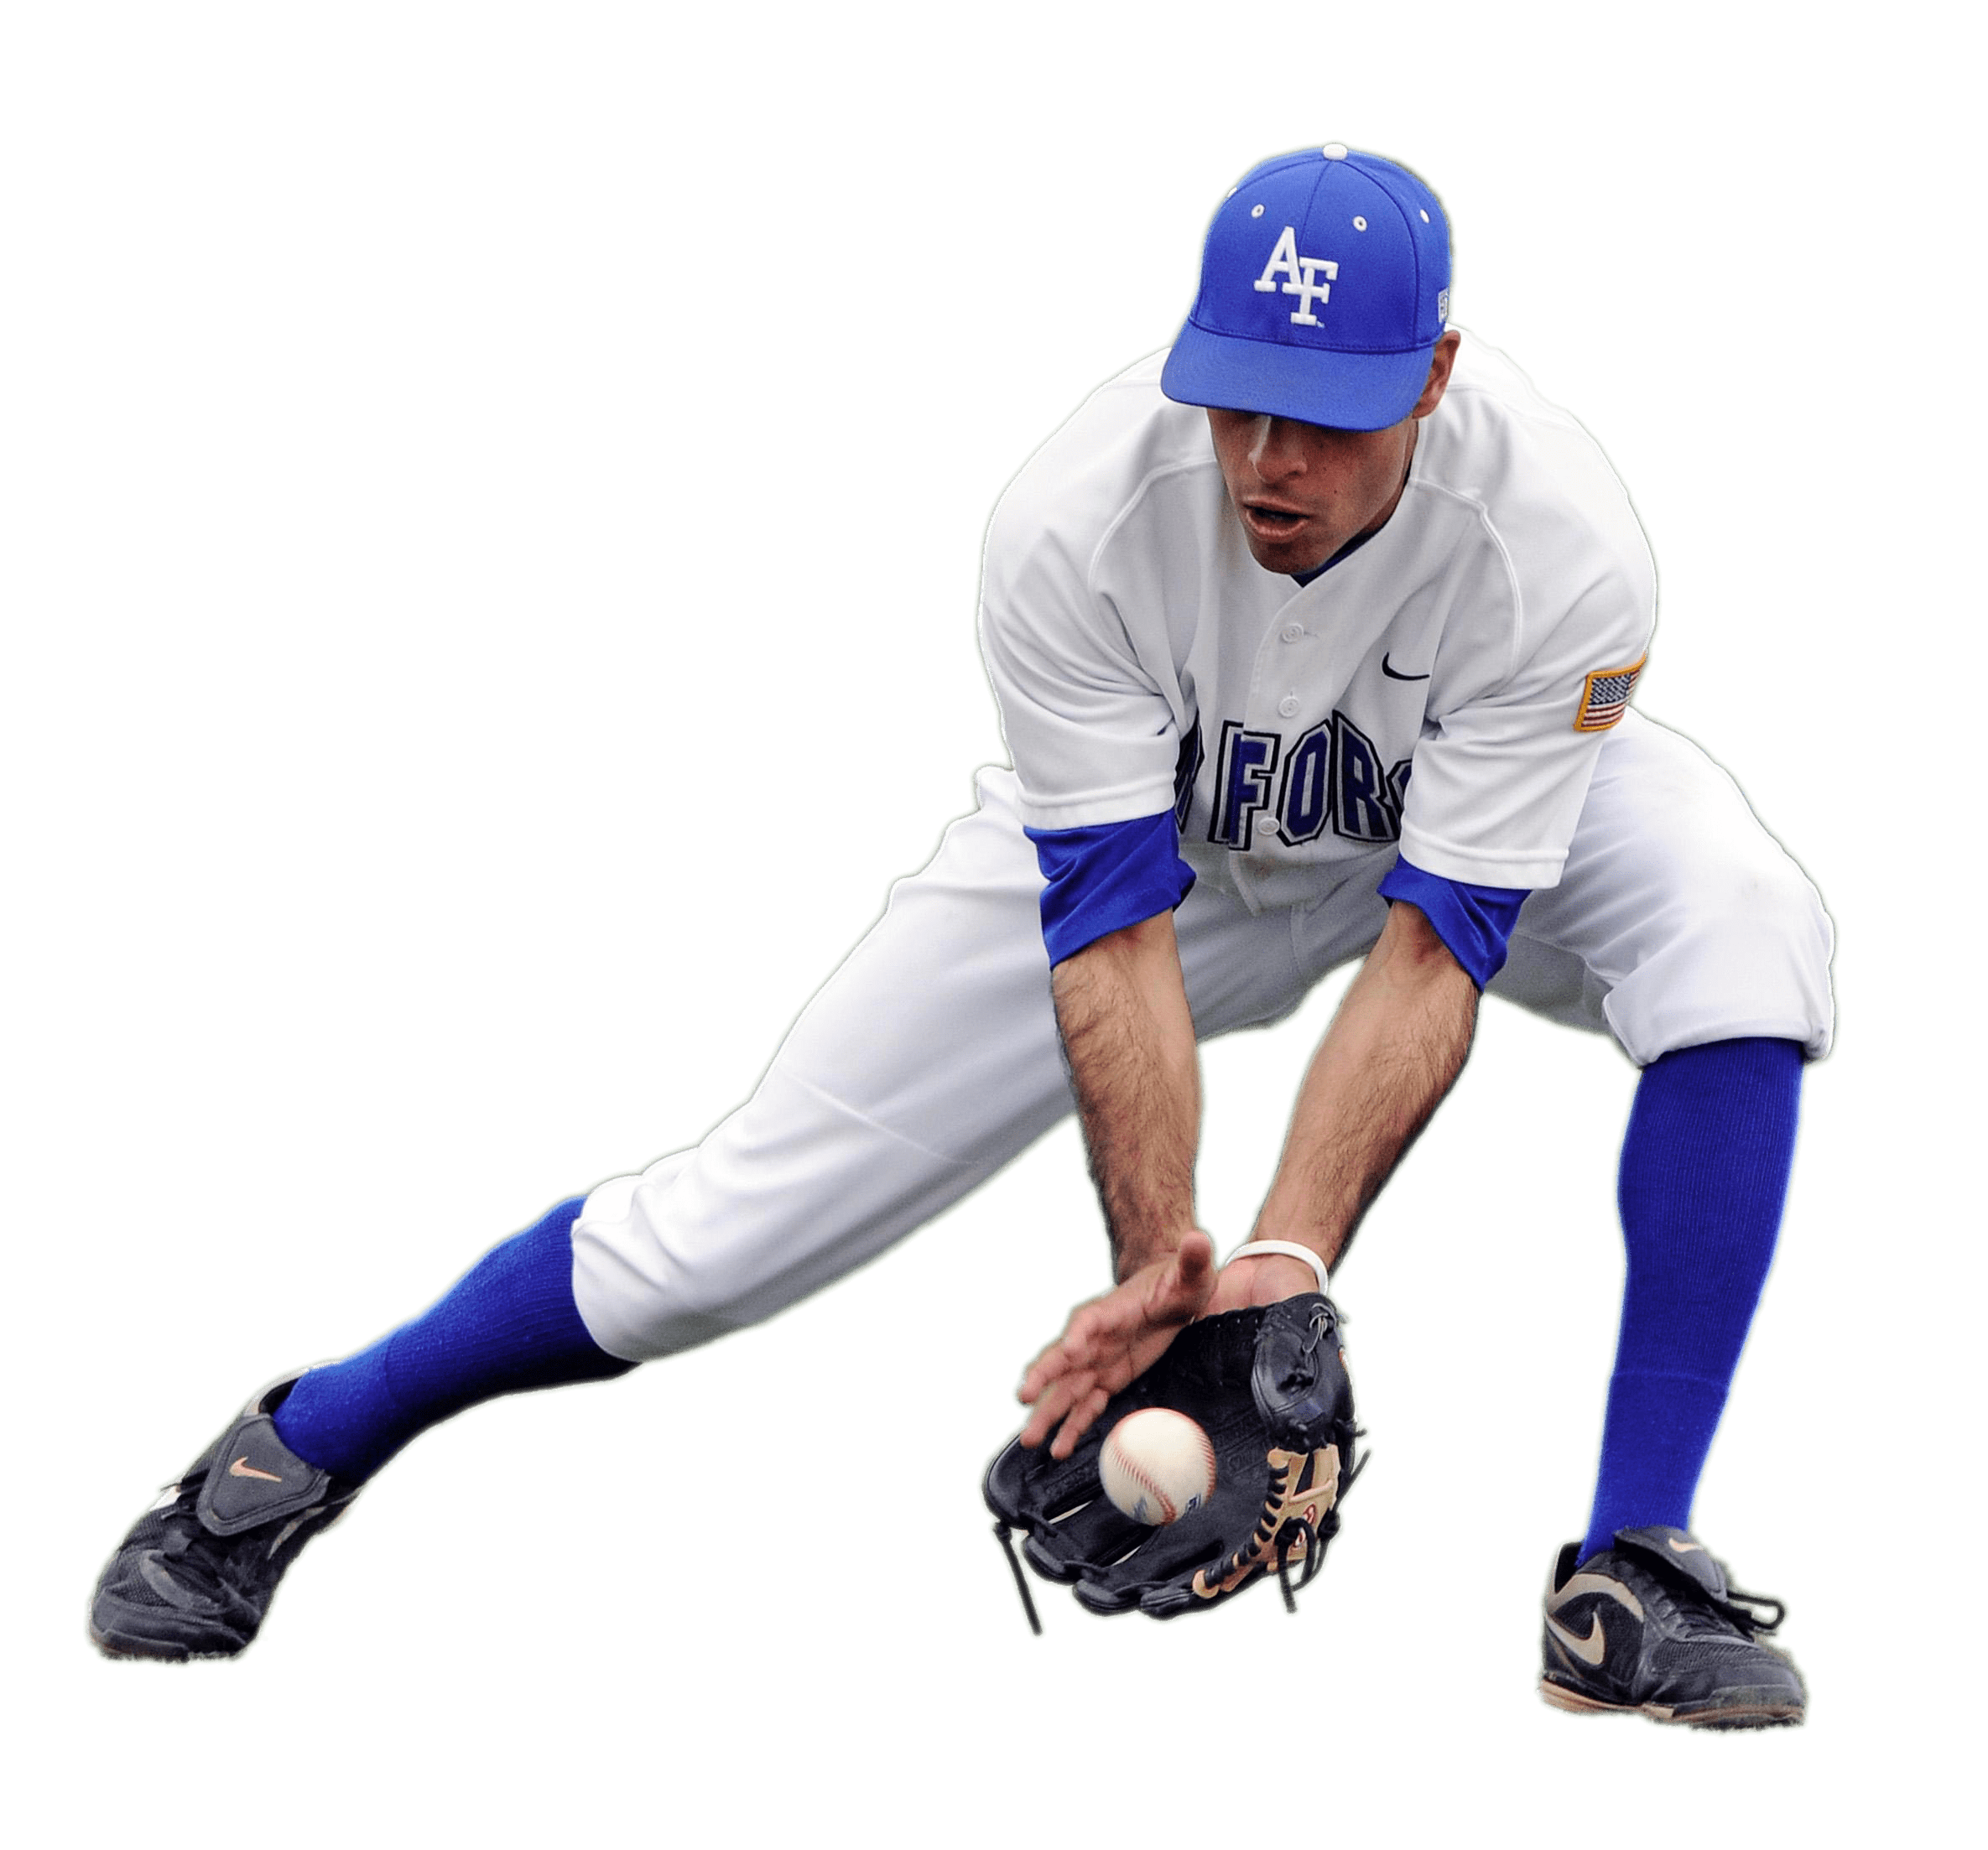 Baseball pitcher png. Player catching low ball